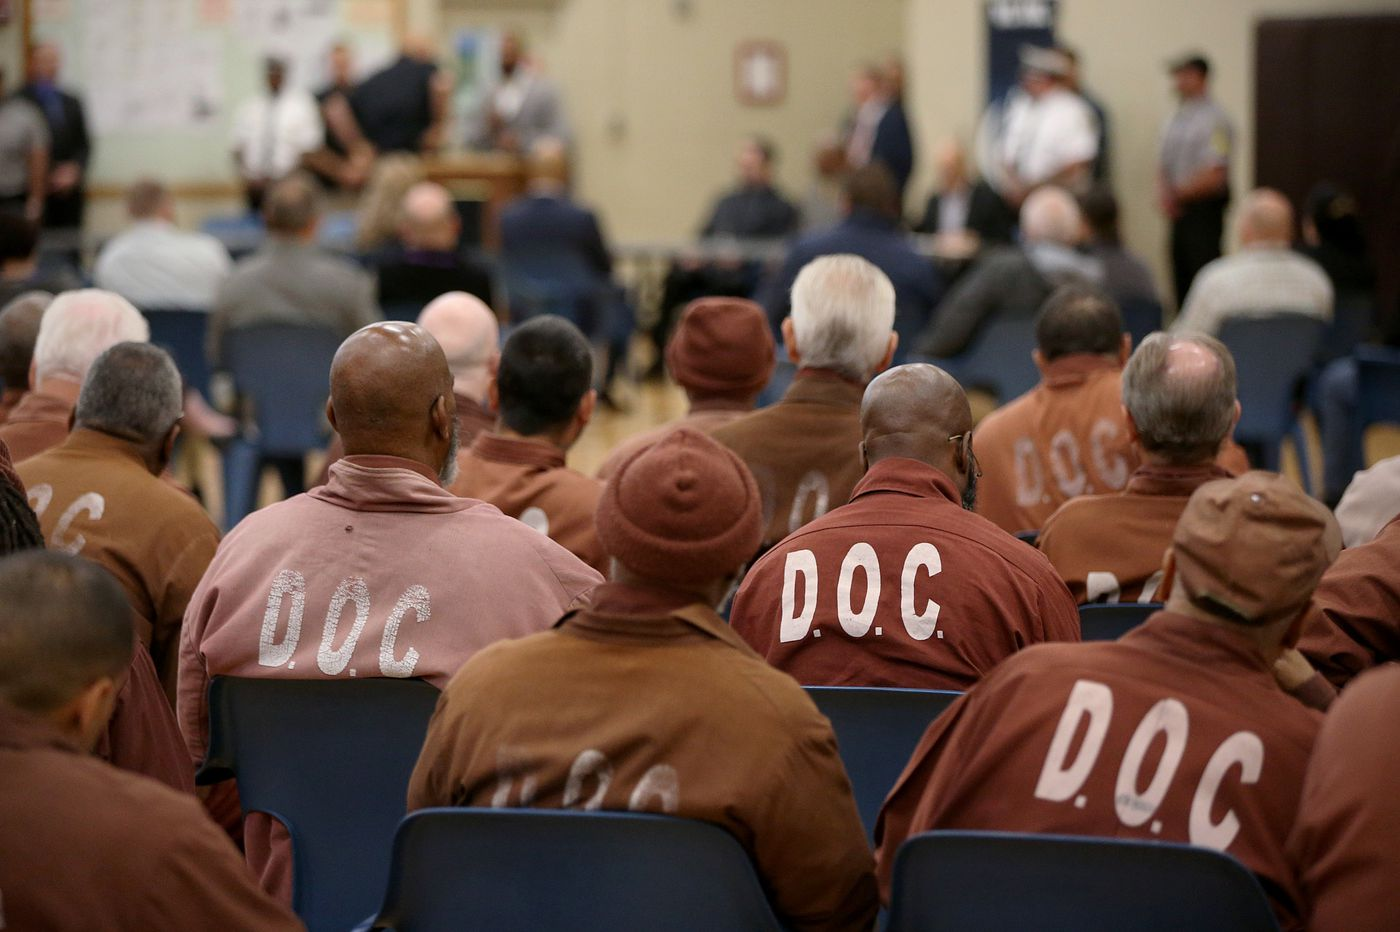 Lawsuit challenges Pennsylvania's mandatory life prison terms for some murder convictions